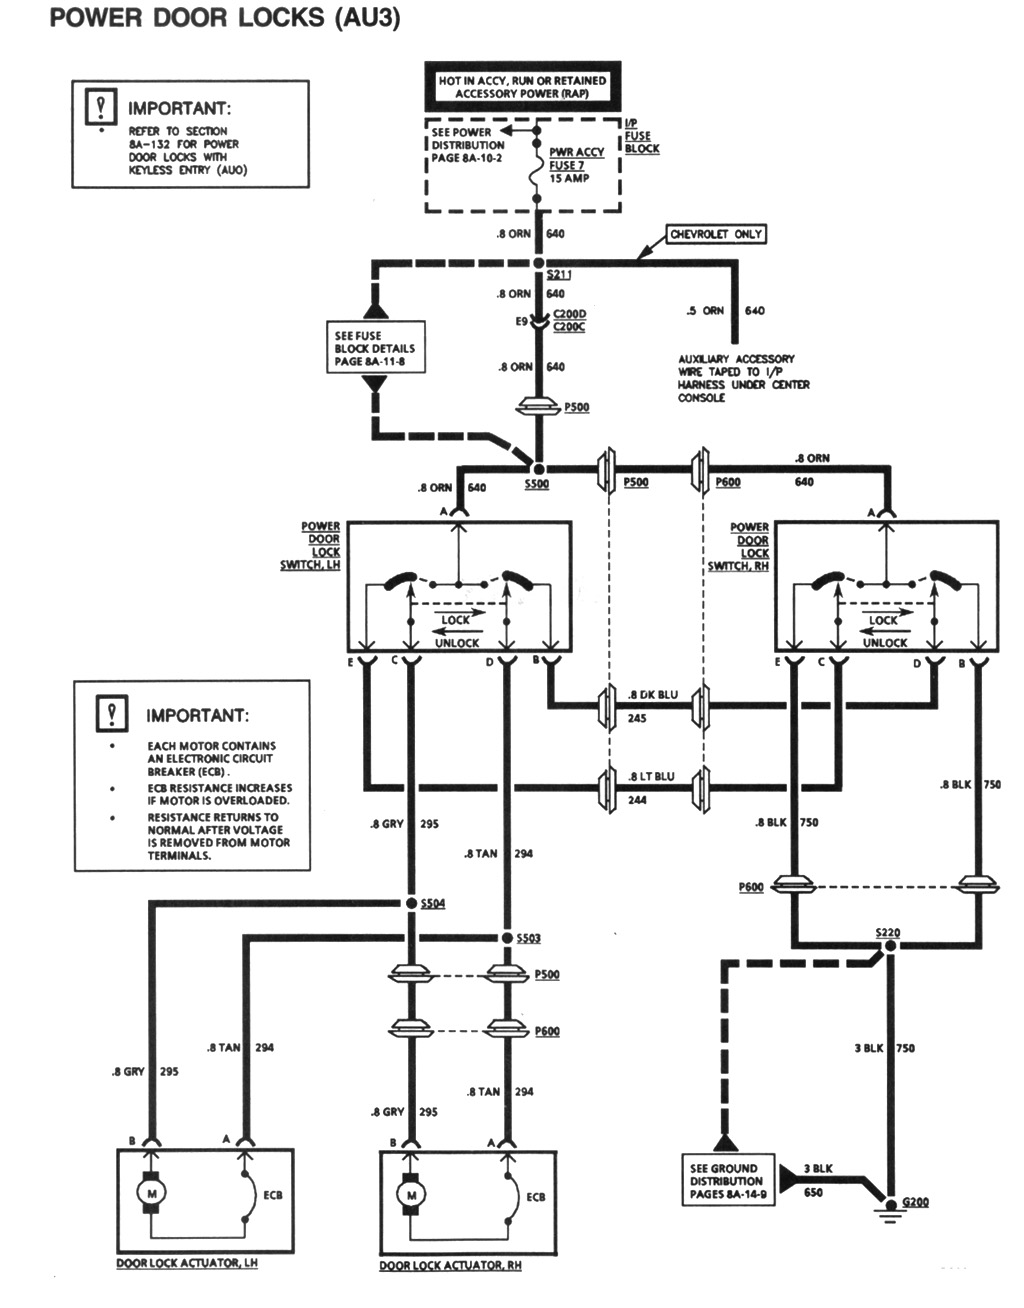 Power Door Lock Schematic Can Someone Please Translate